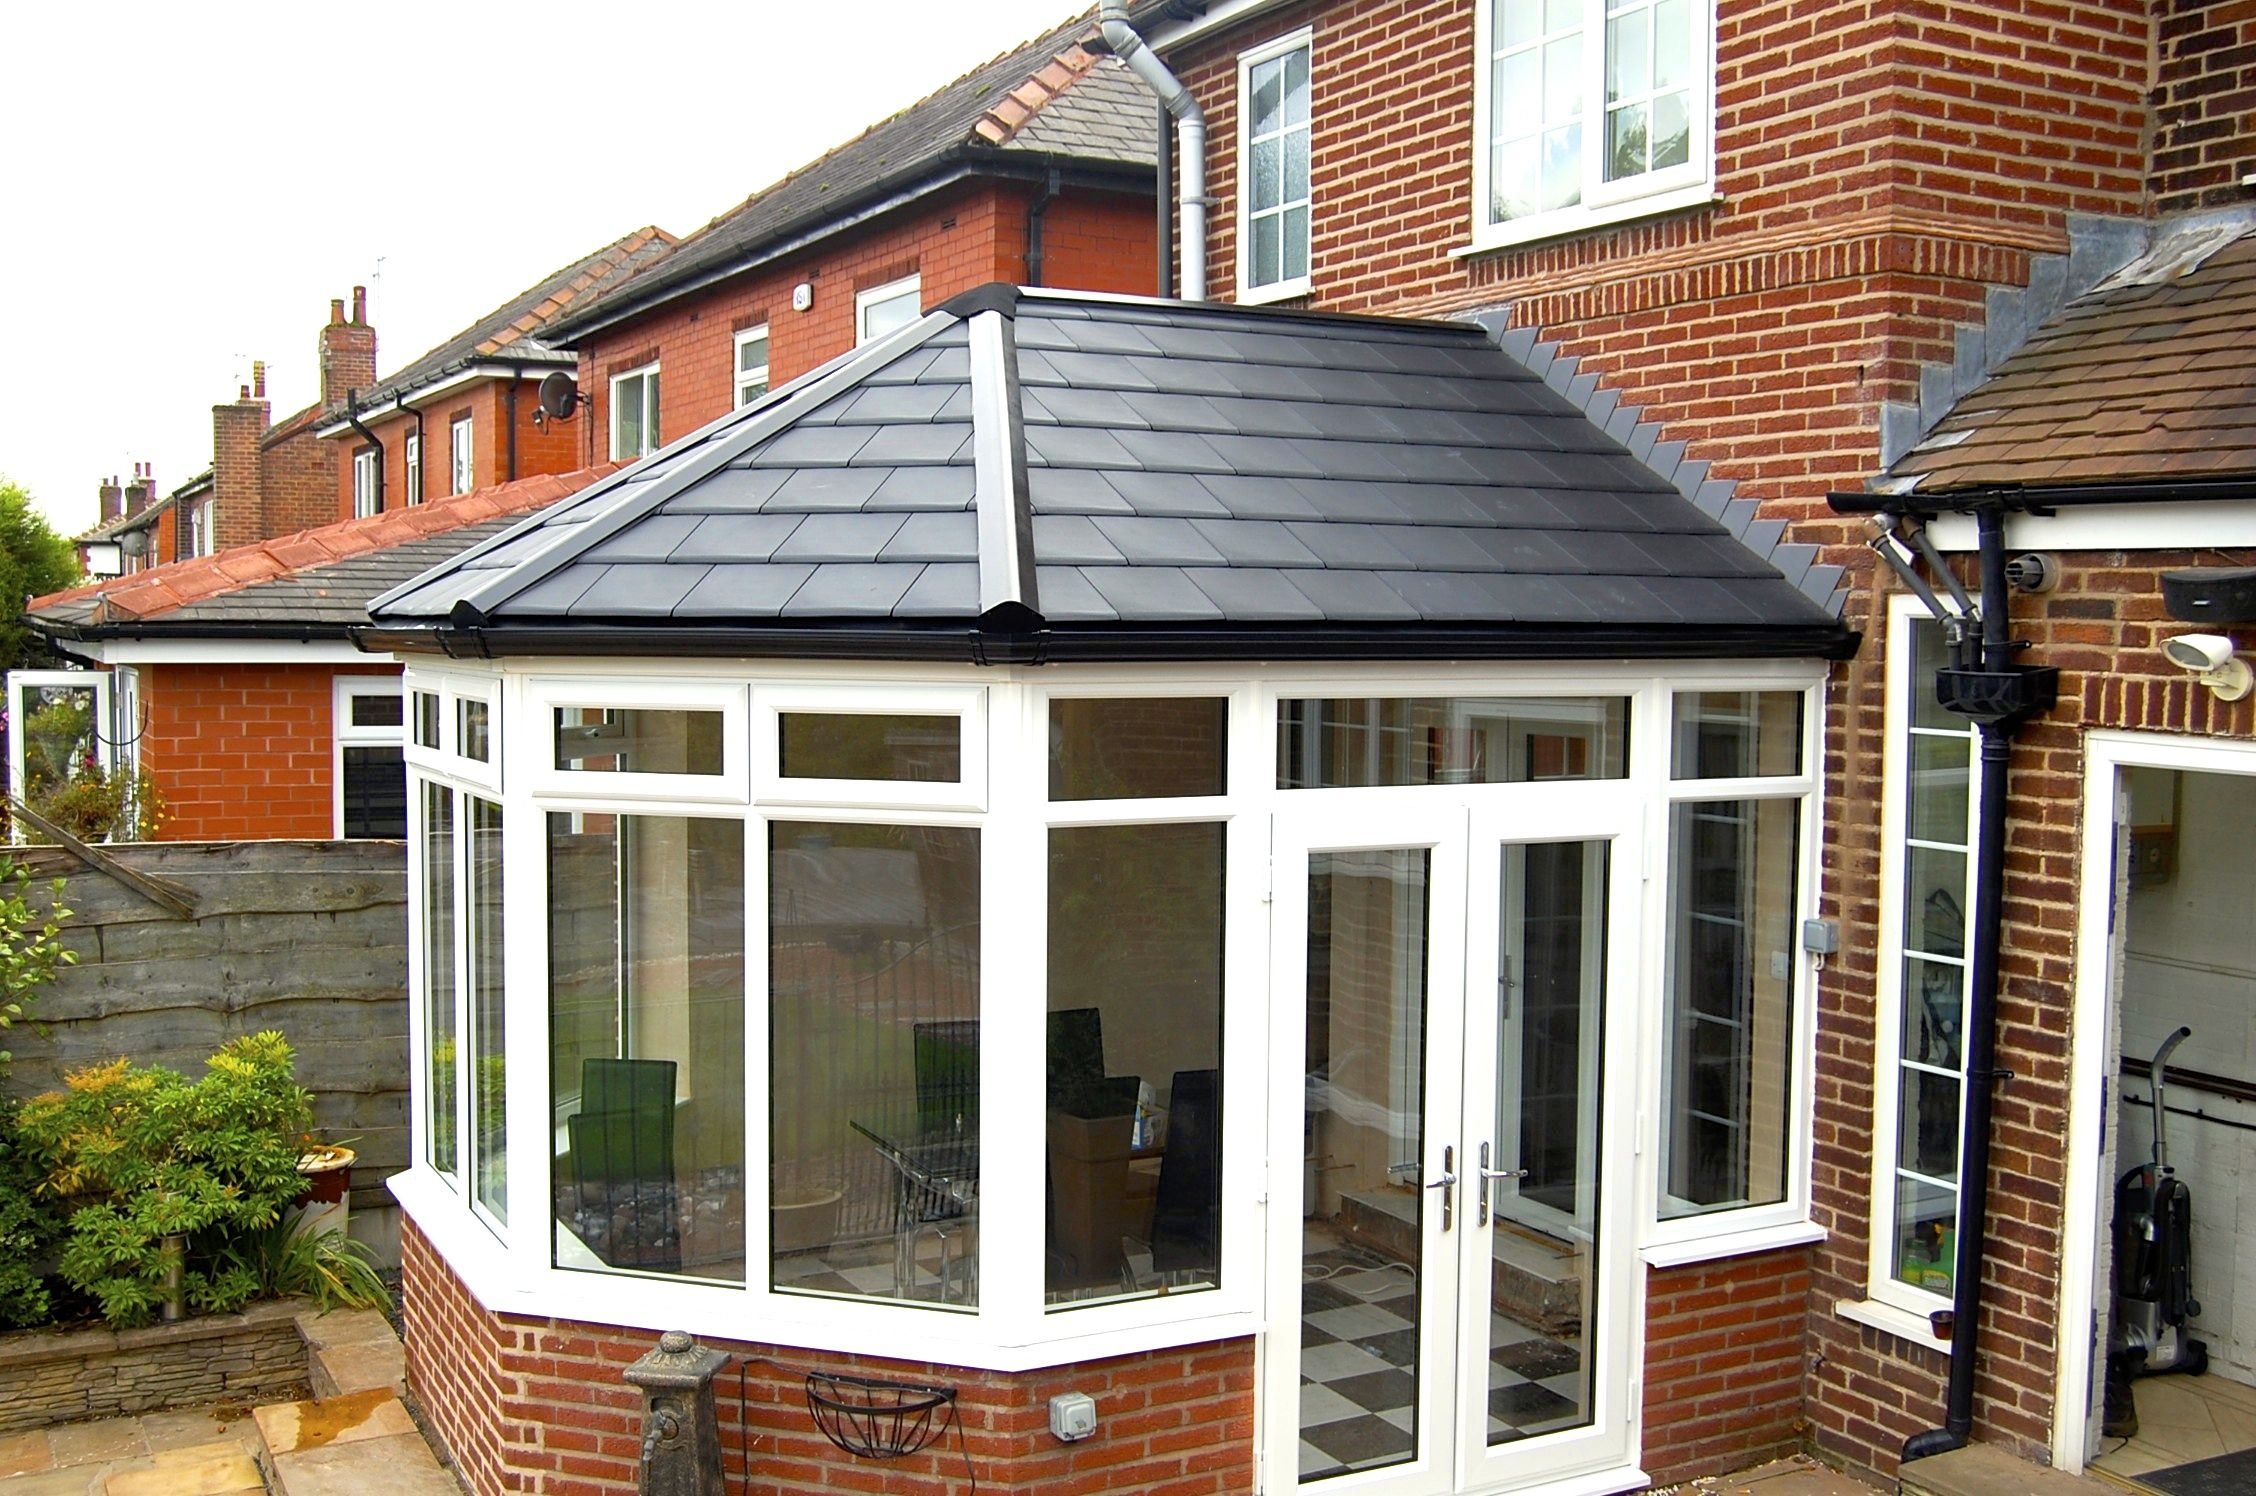 These Solid Roofs For Your Conservatory Have Really Taken Off In The Past Twelve Months Look At Our D Garden Room Extensions Artistic Space Conservatory Roof